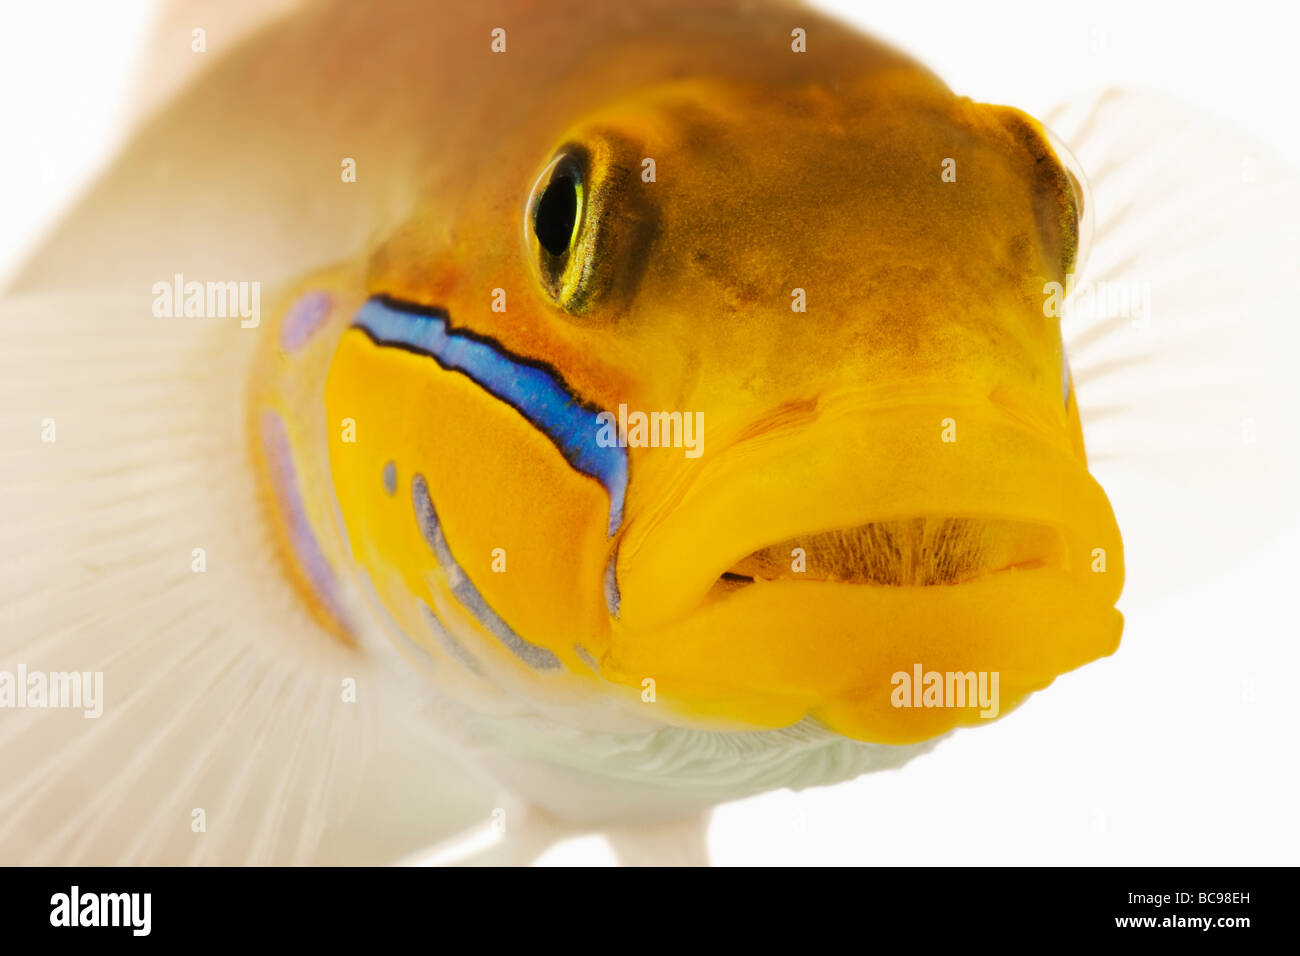 Gold head goby marine fish Also known as Sleeper Gold Head Goby Blueband Goby Pennant Glider Pretty Prawn Distr - Stock Image